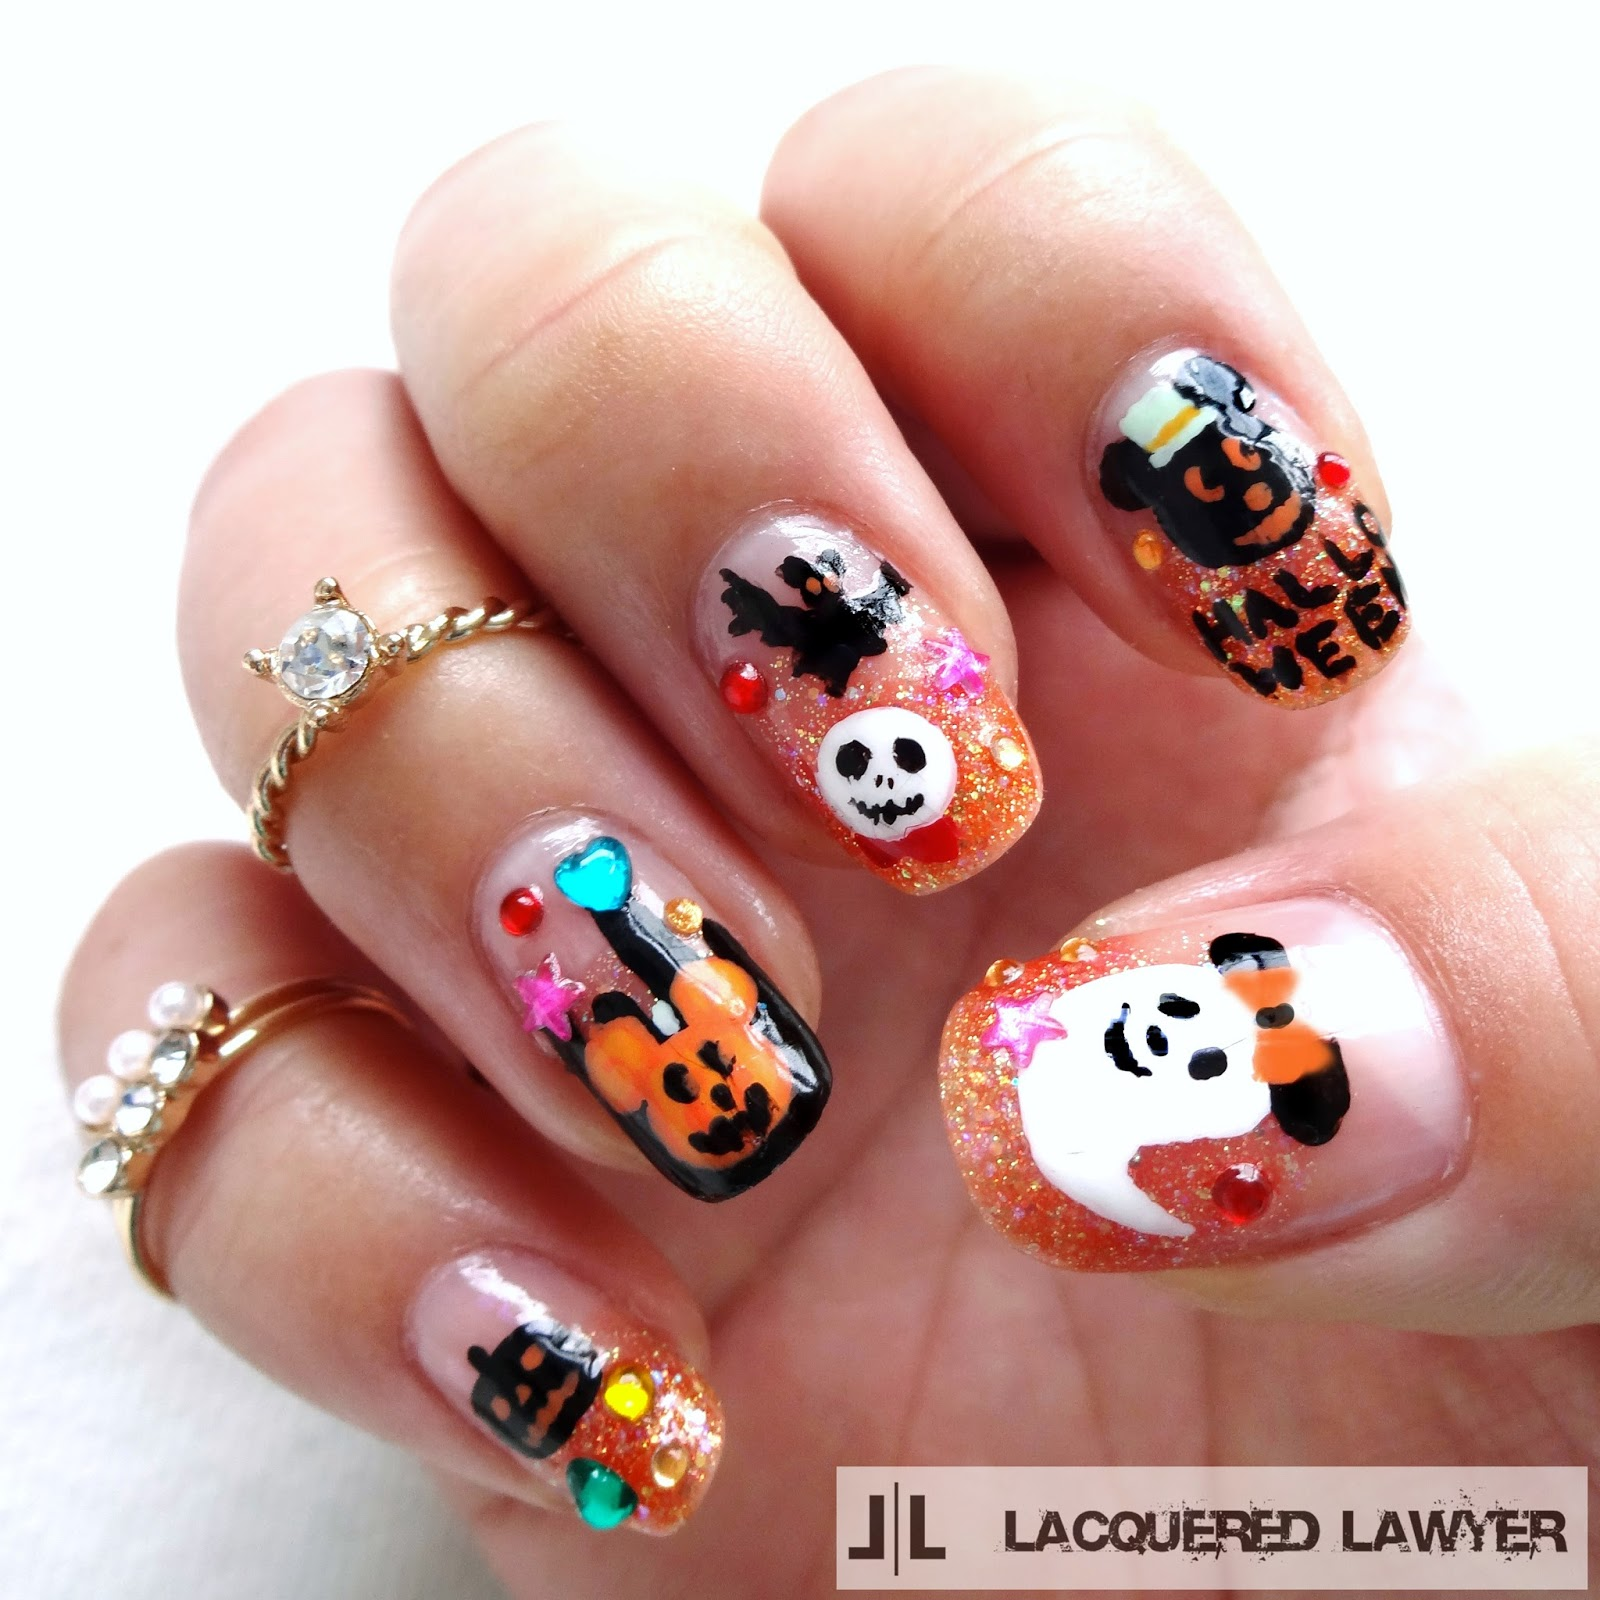 Ideas Of Nail Art: 26+ Disney Nail Art Designs, Ideas